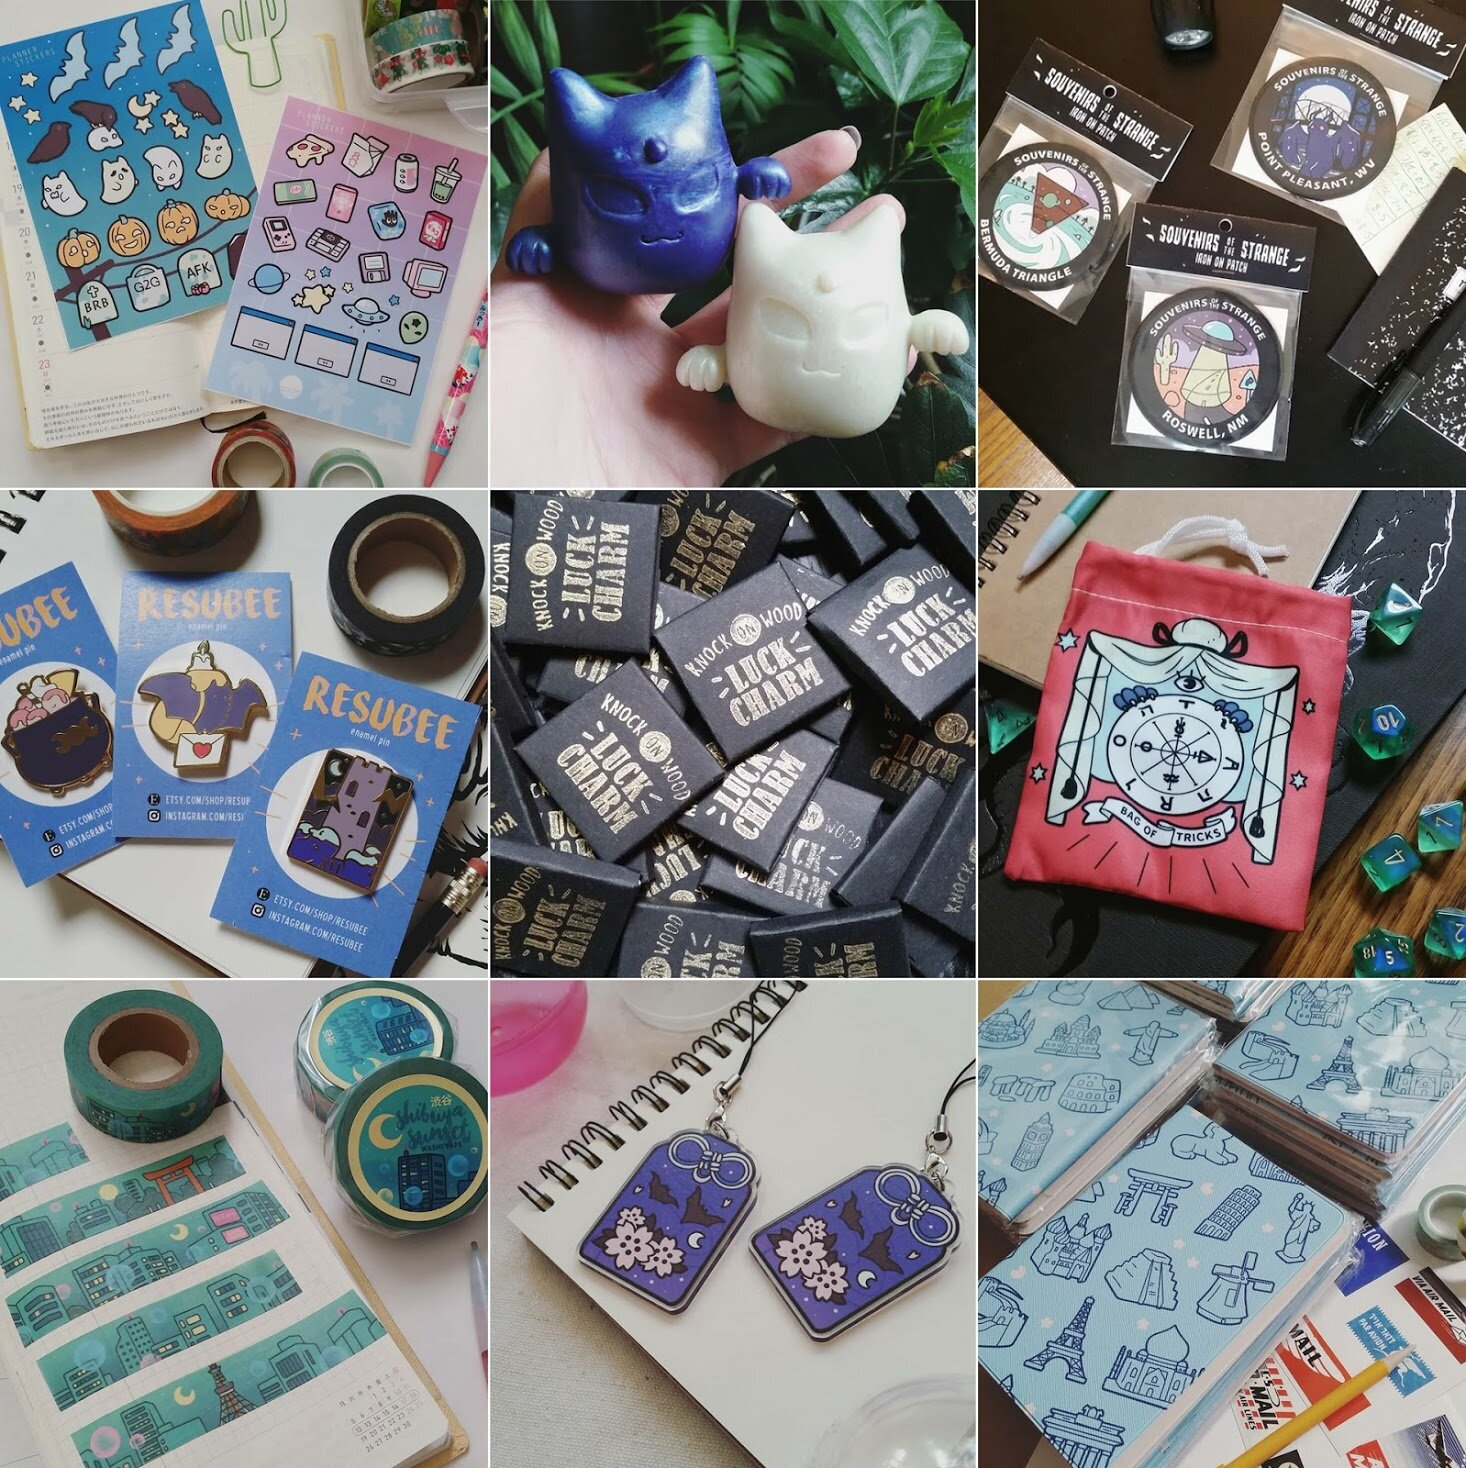 LM Pederson    Patches, enamel pins, stationery items (stickers, journal, washi tape), tarot decks, small prints, wooden charms, resin art toys.